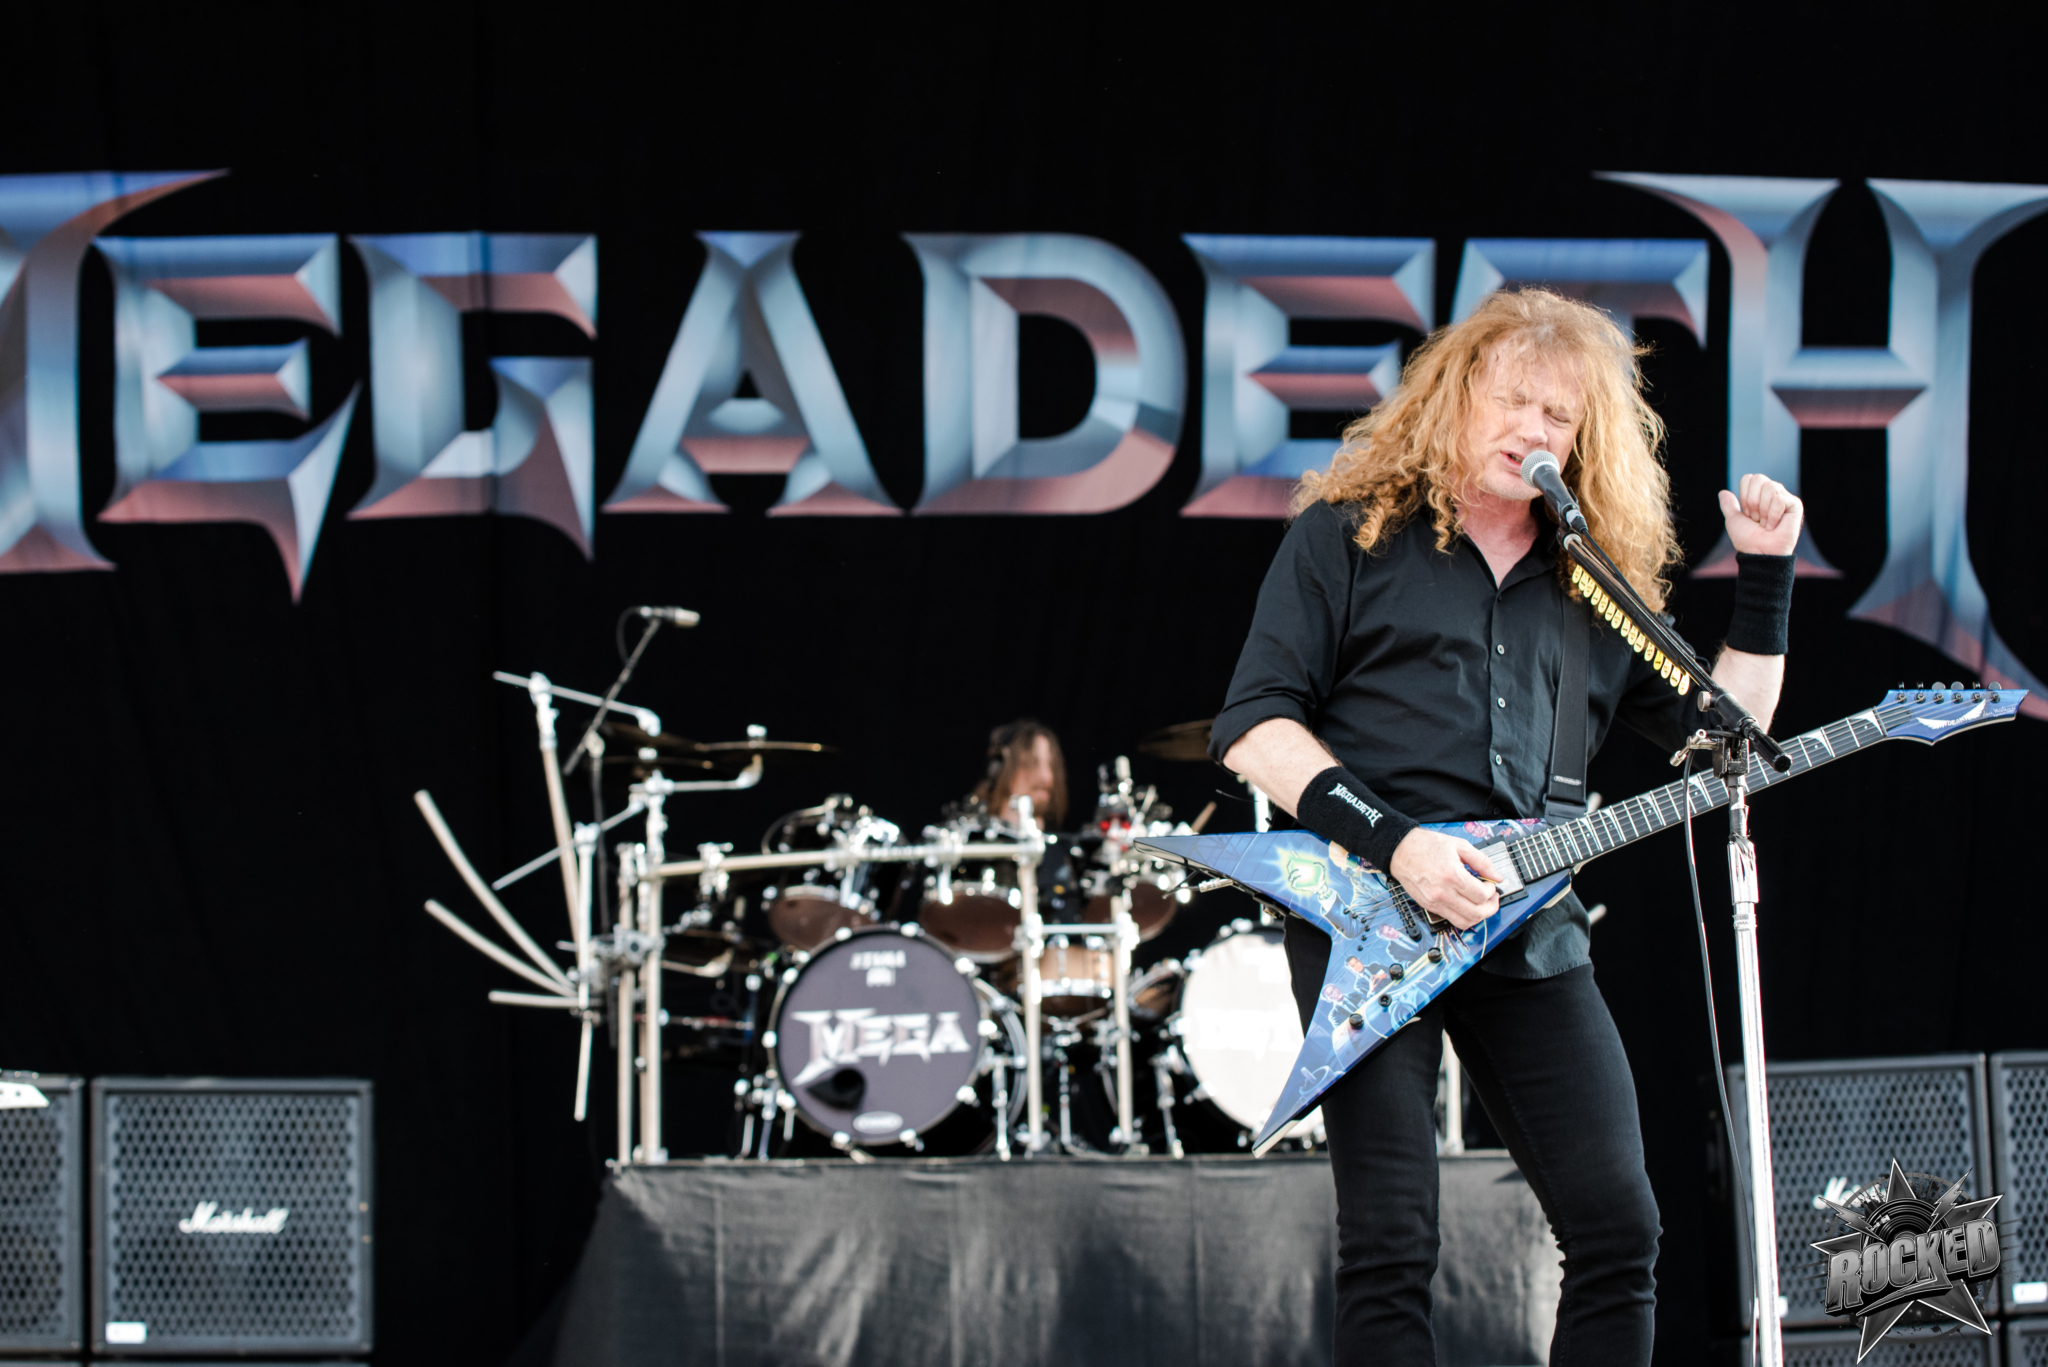 photos megadeth at chicago open air in chicago il 7 14 2017 rocked